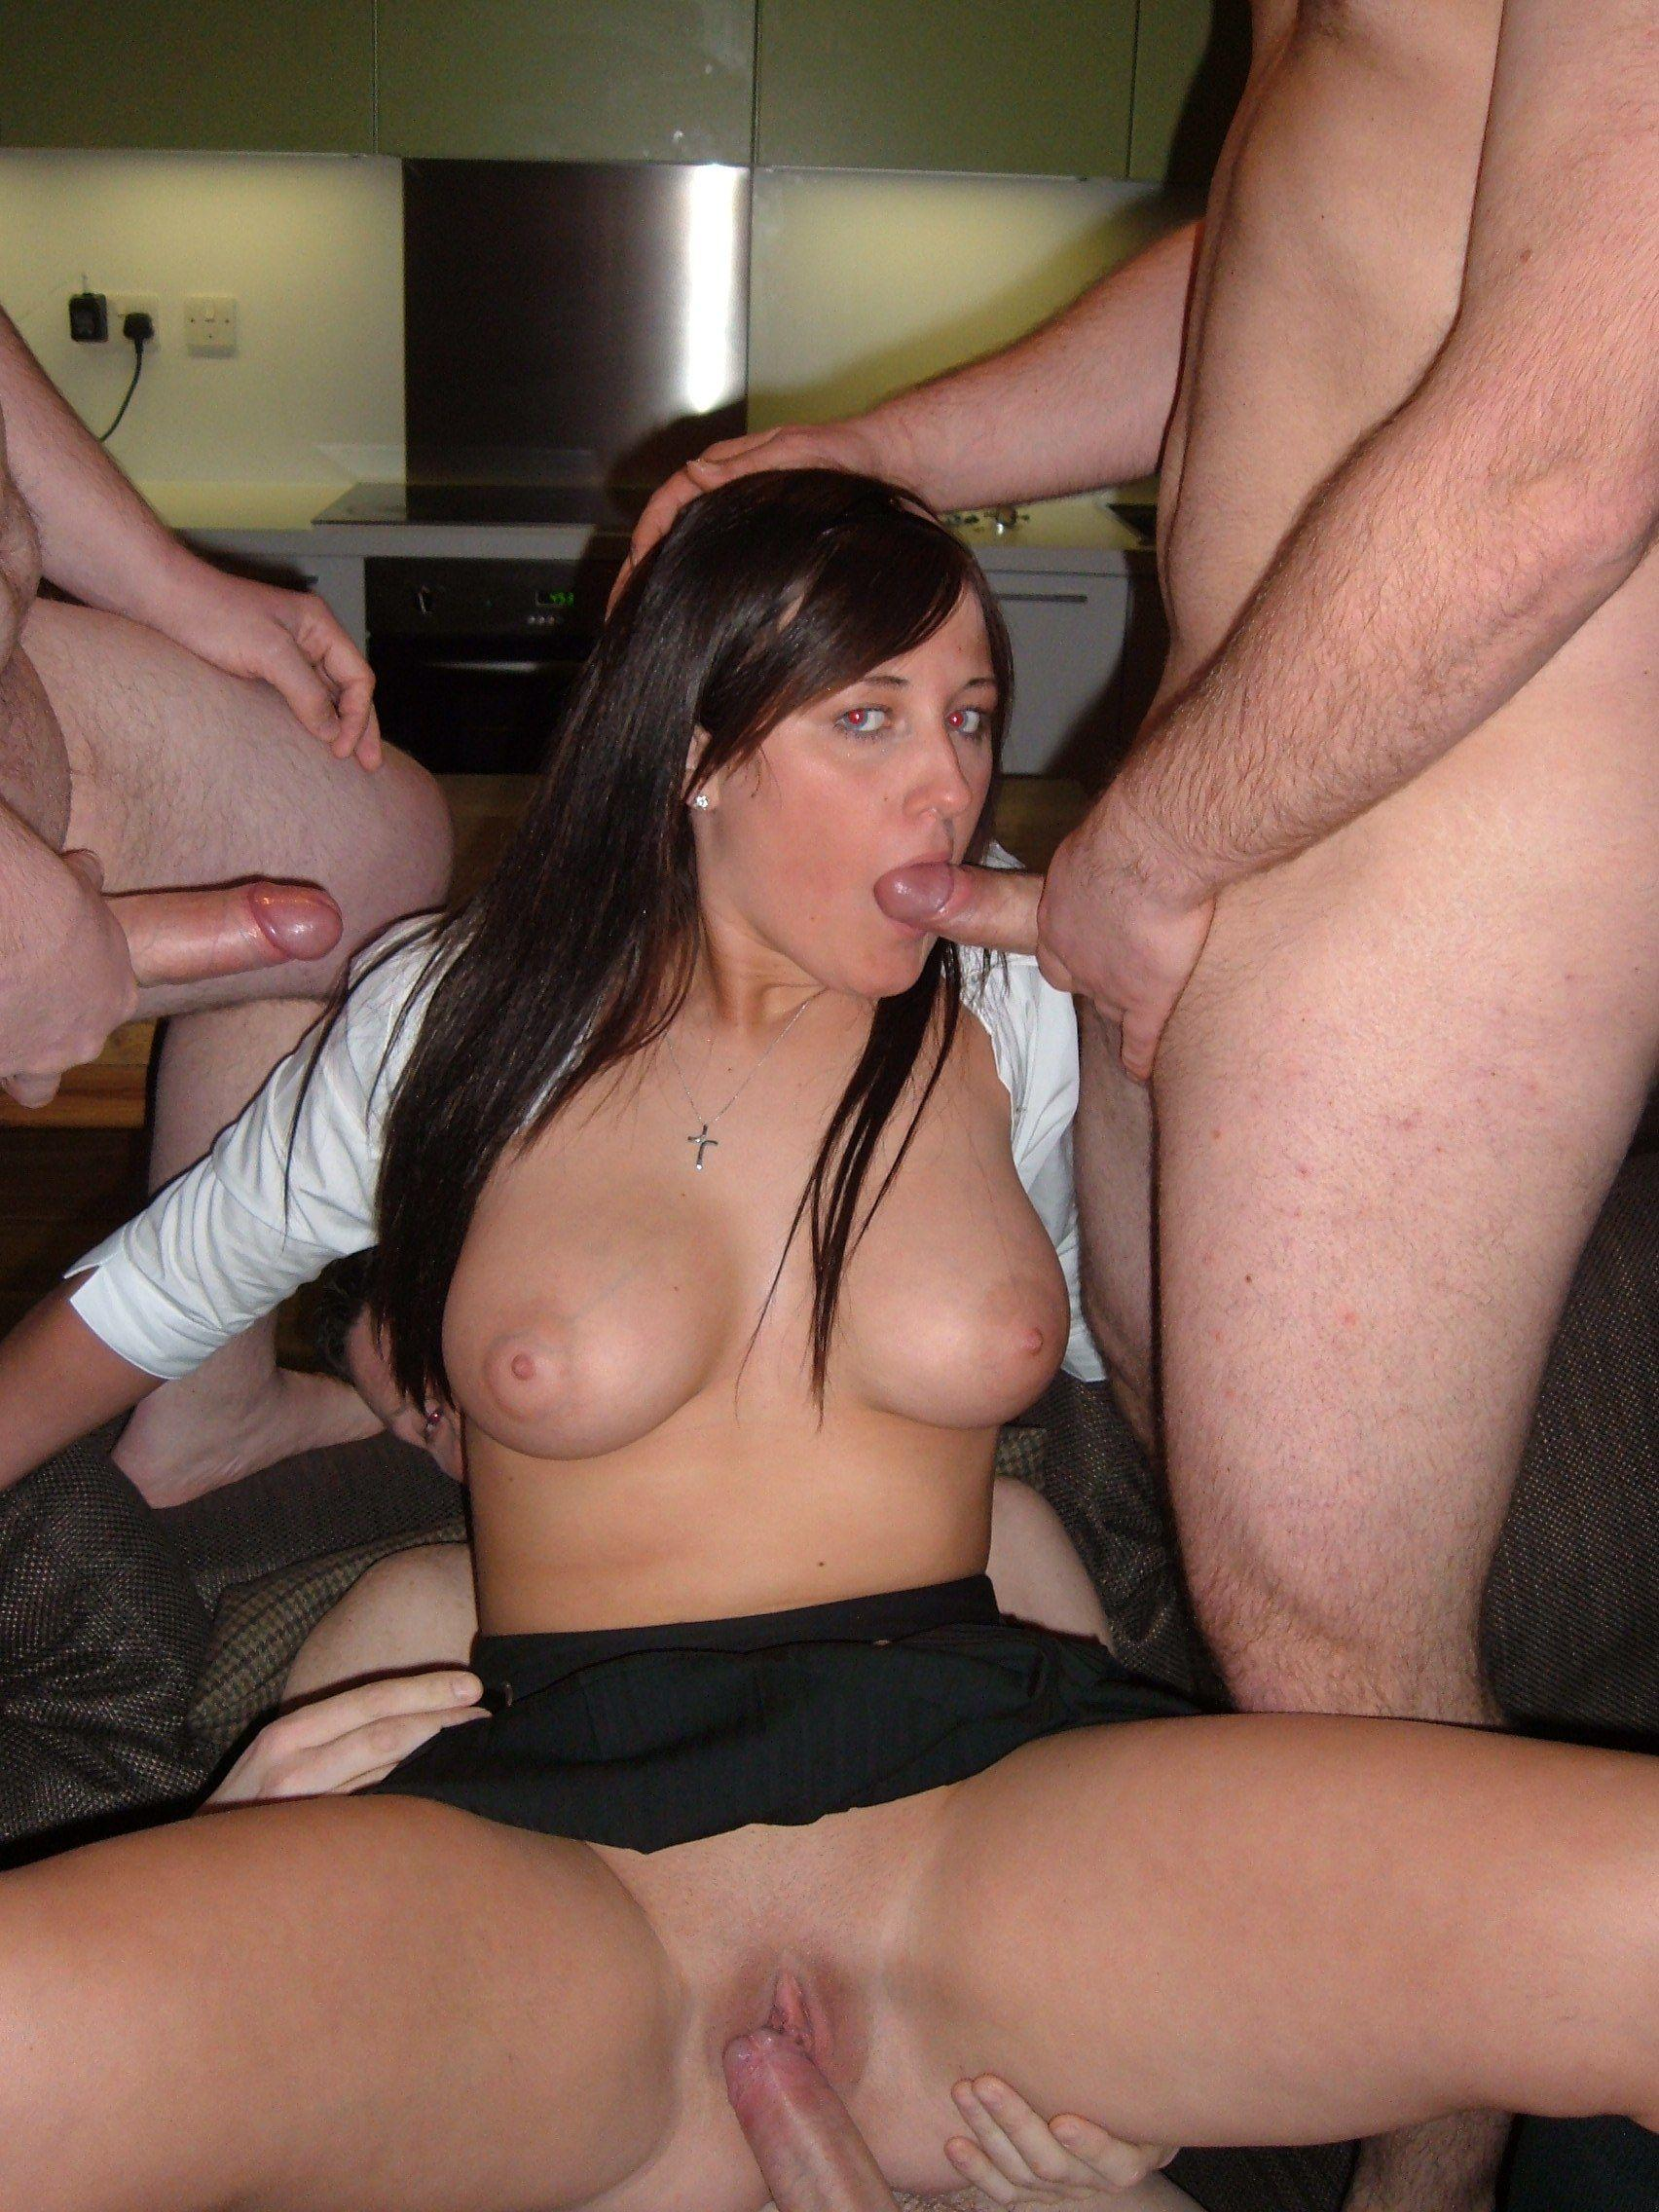 touching phrase free deep throat sluts share your opinion